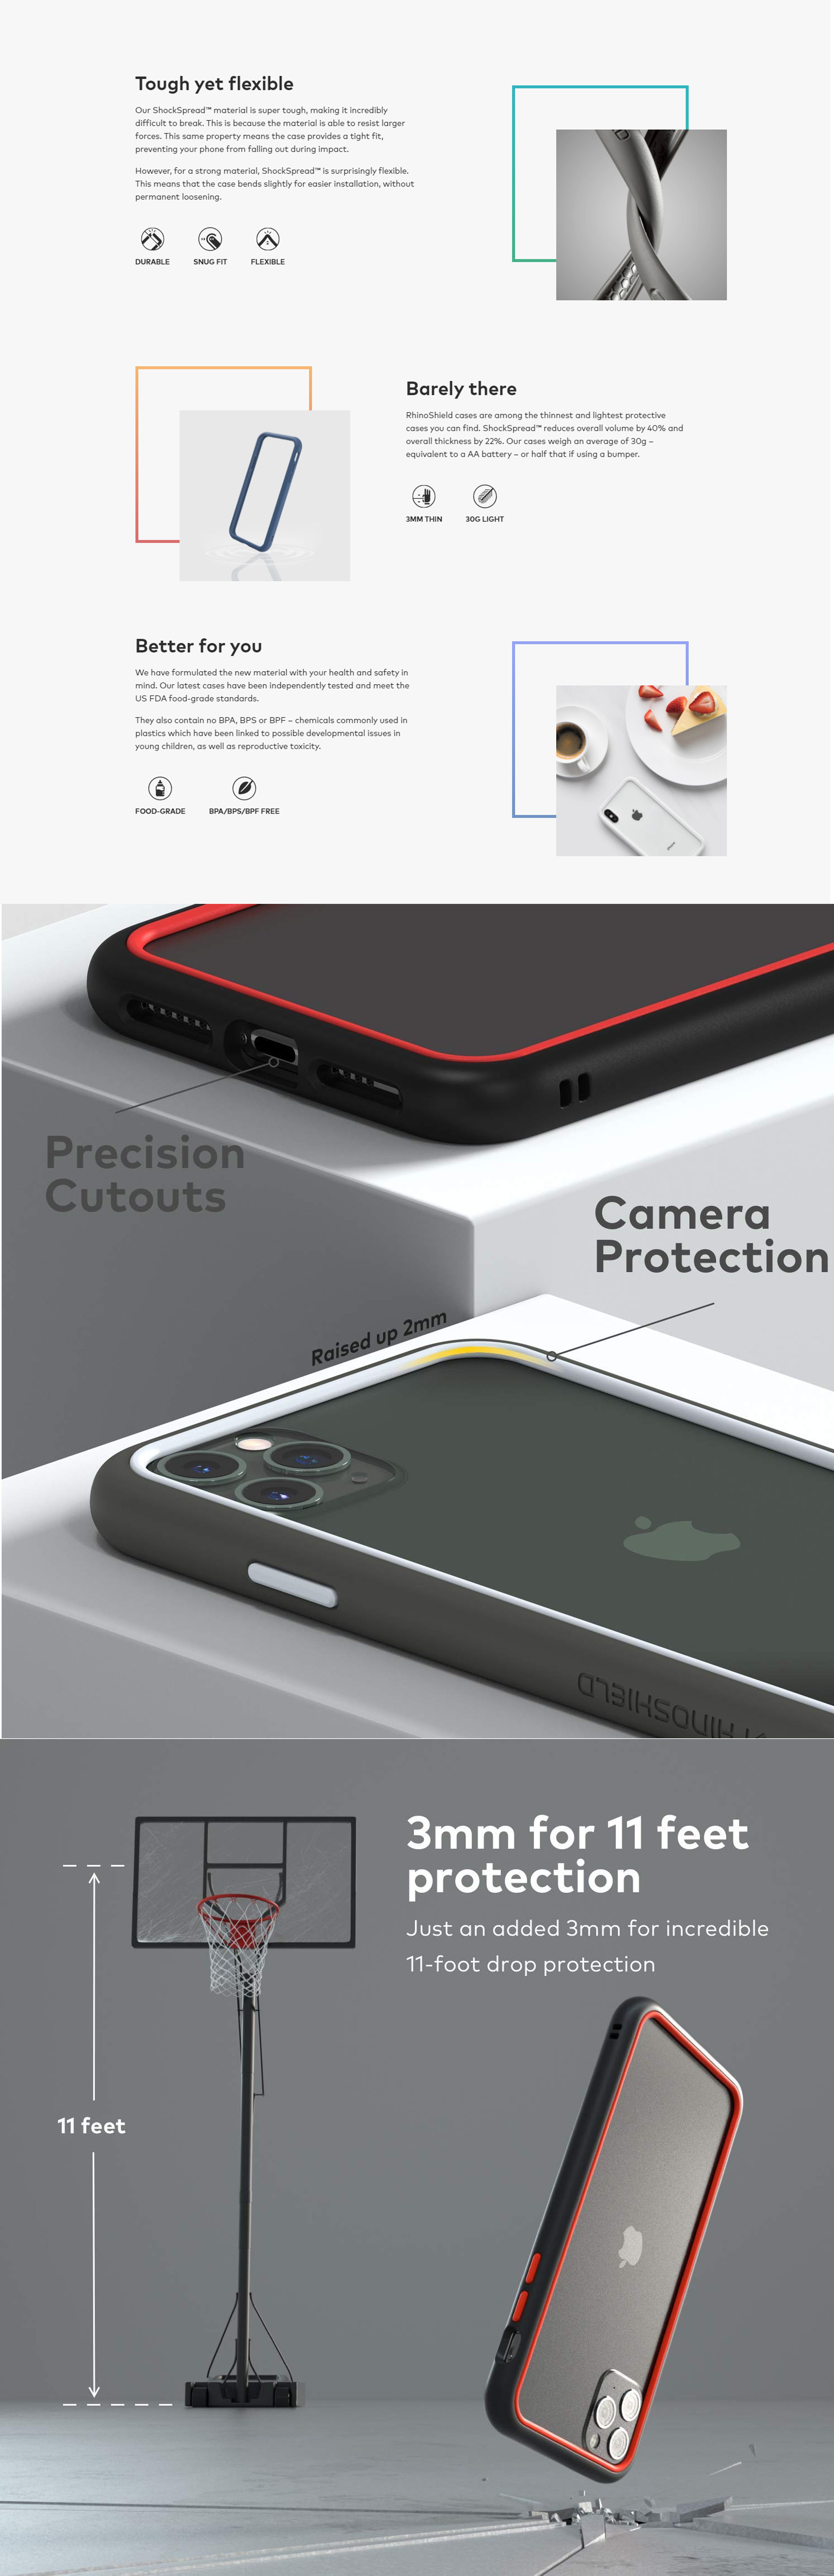 rhinoshield/4710562404319/1-des-fx-rhinoshield-MOD-NX-iphone-11-pro-rim-button-frame-clear-back-plate-red-color-4710562404319-malaysia-authorised-retailer